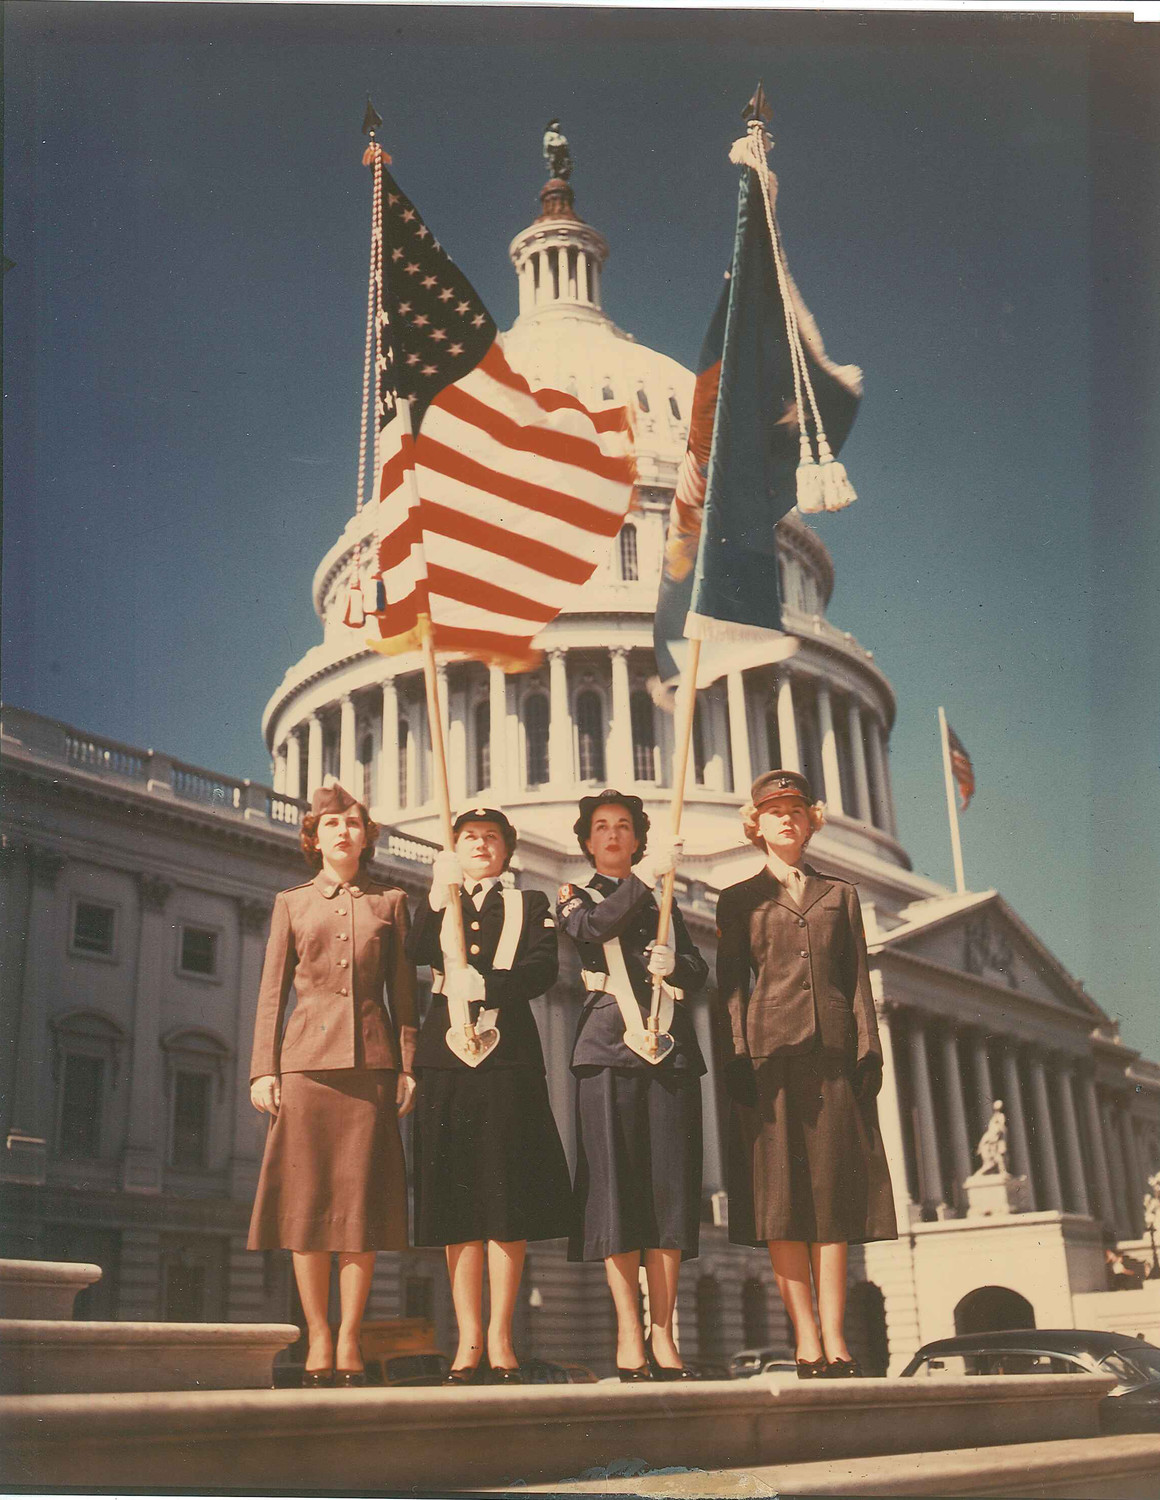 Evelyn Kandel, far right, of Glen Cove, served in the U.S. Marine Corps Women's Reserve during the Korean War, and modeled for the military's public relations materials, like this one.